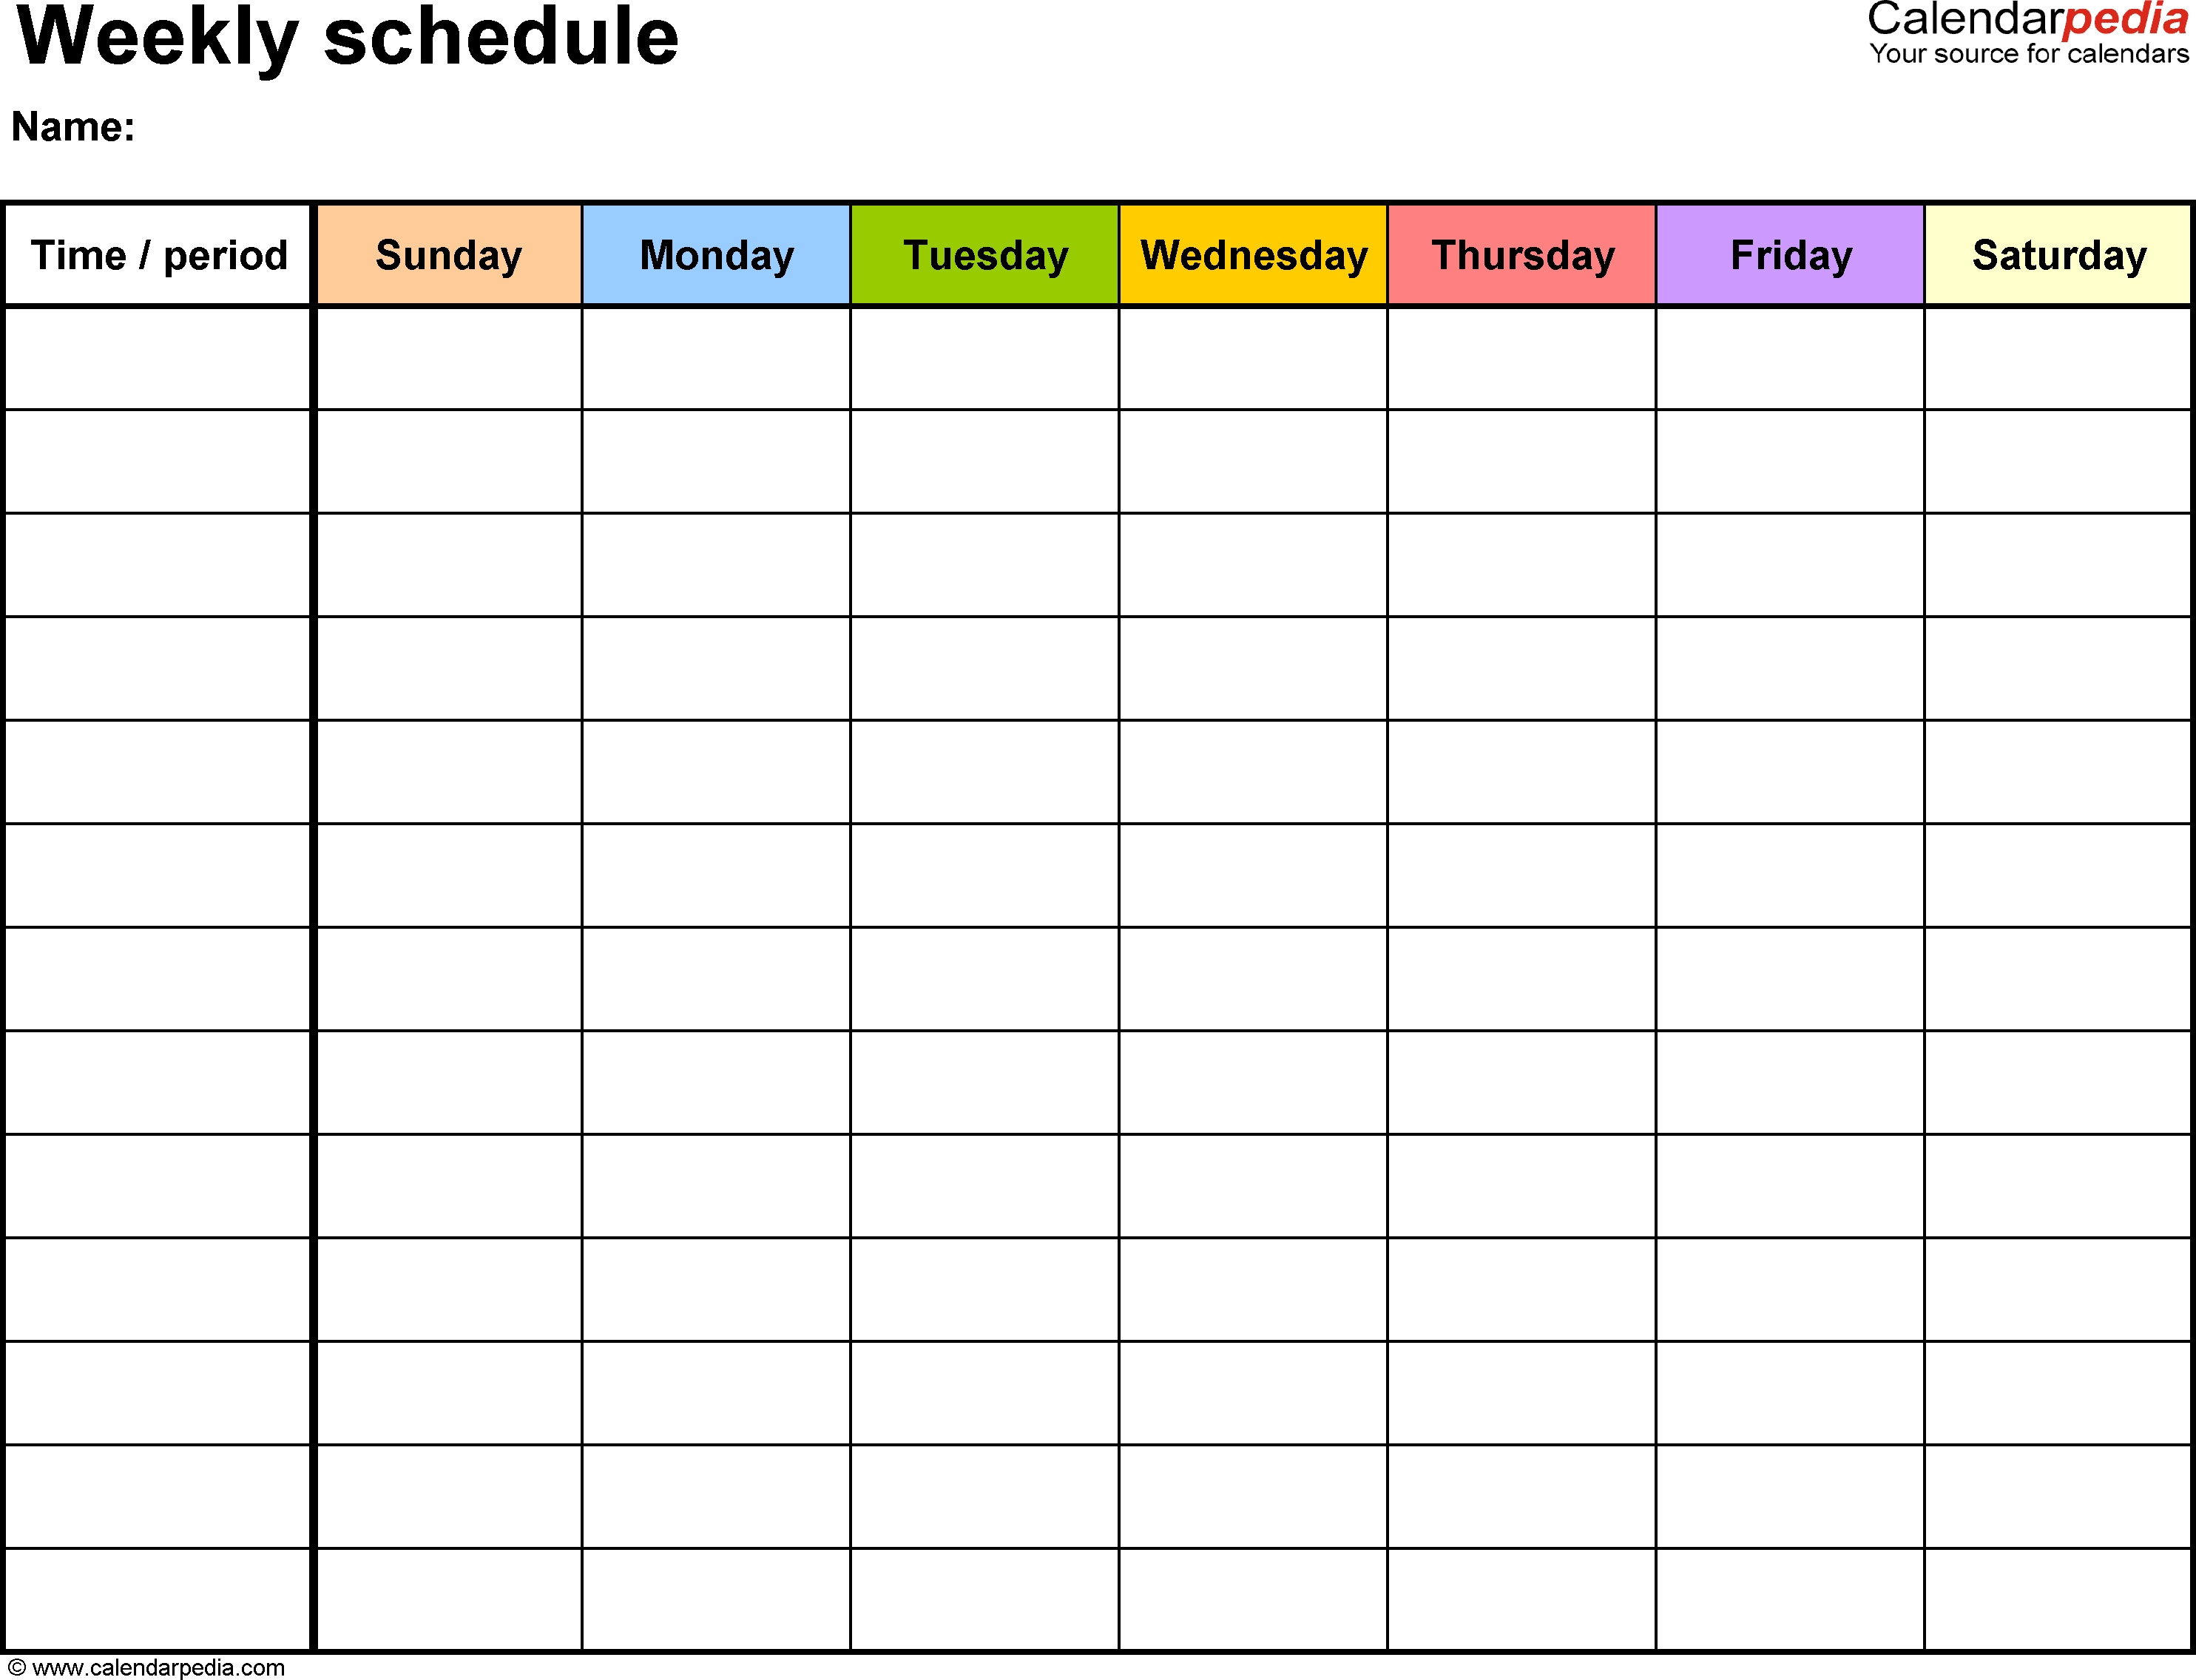 Weekly Schedule Template For Word Version 13: Landscape, 1 inside Microsoft Calendar Template Five Day